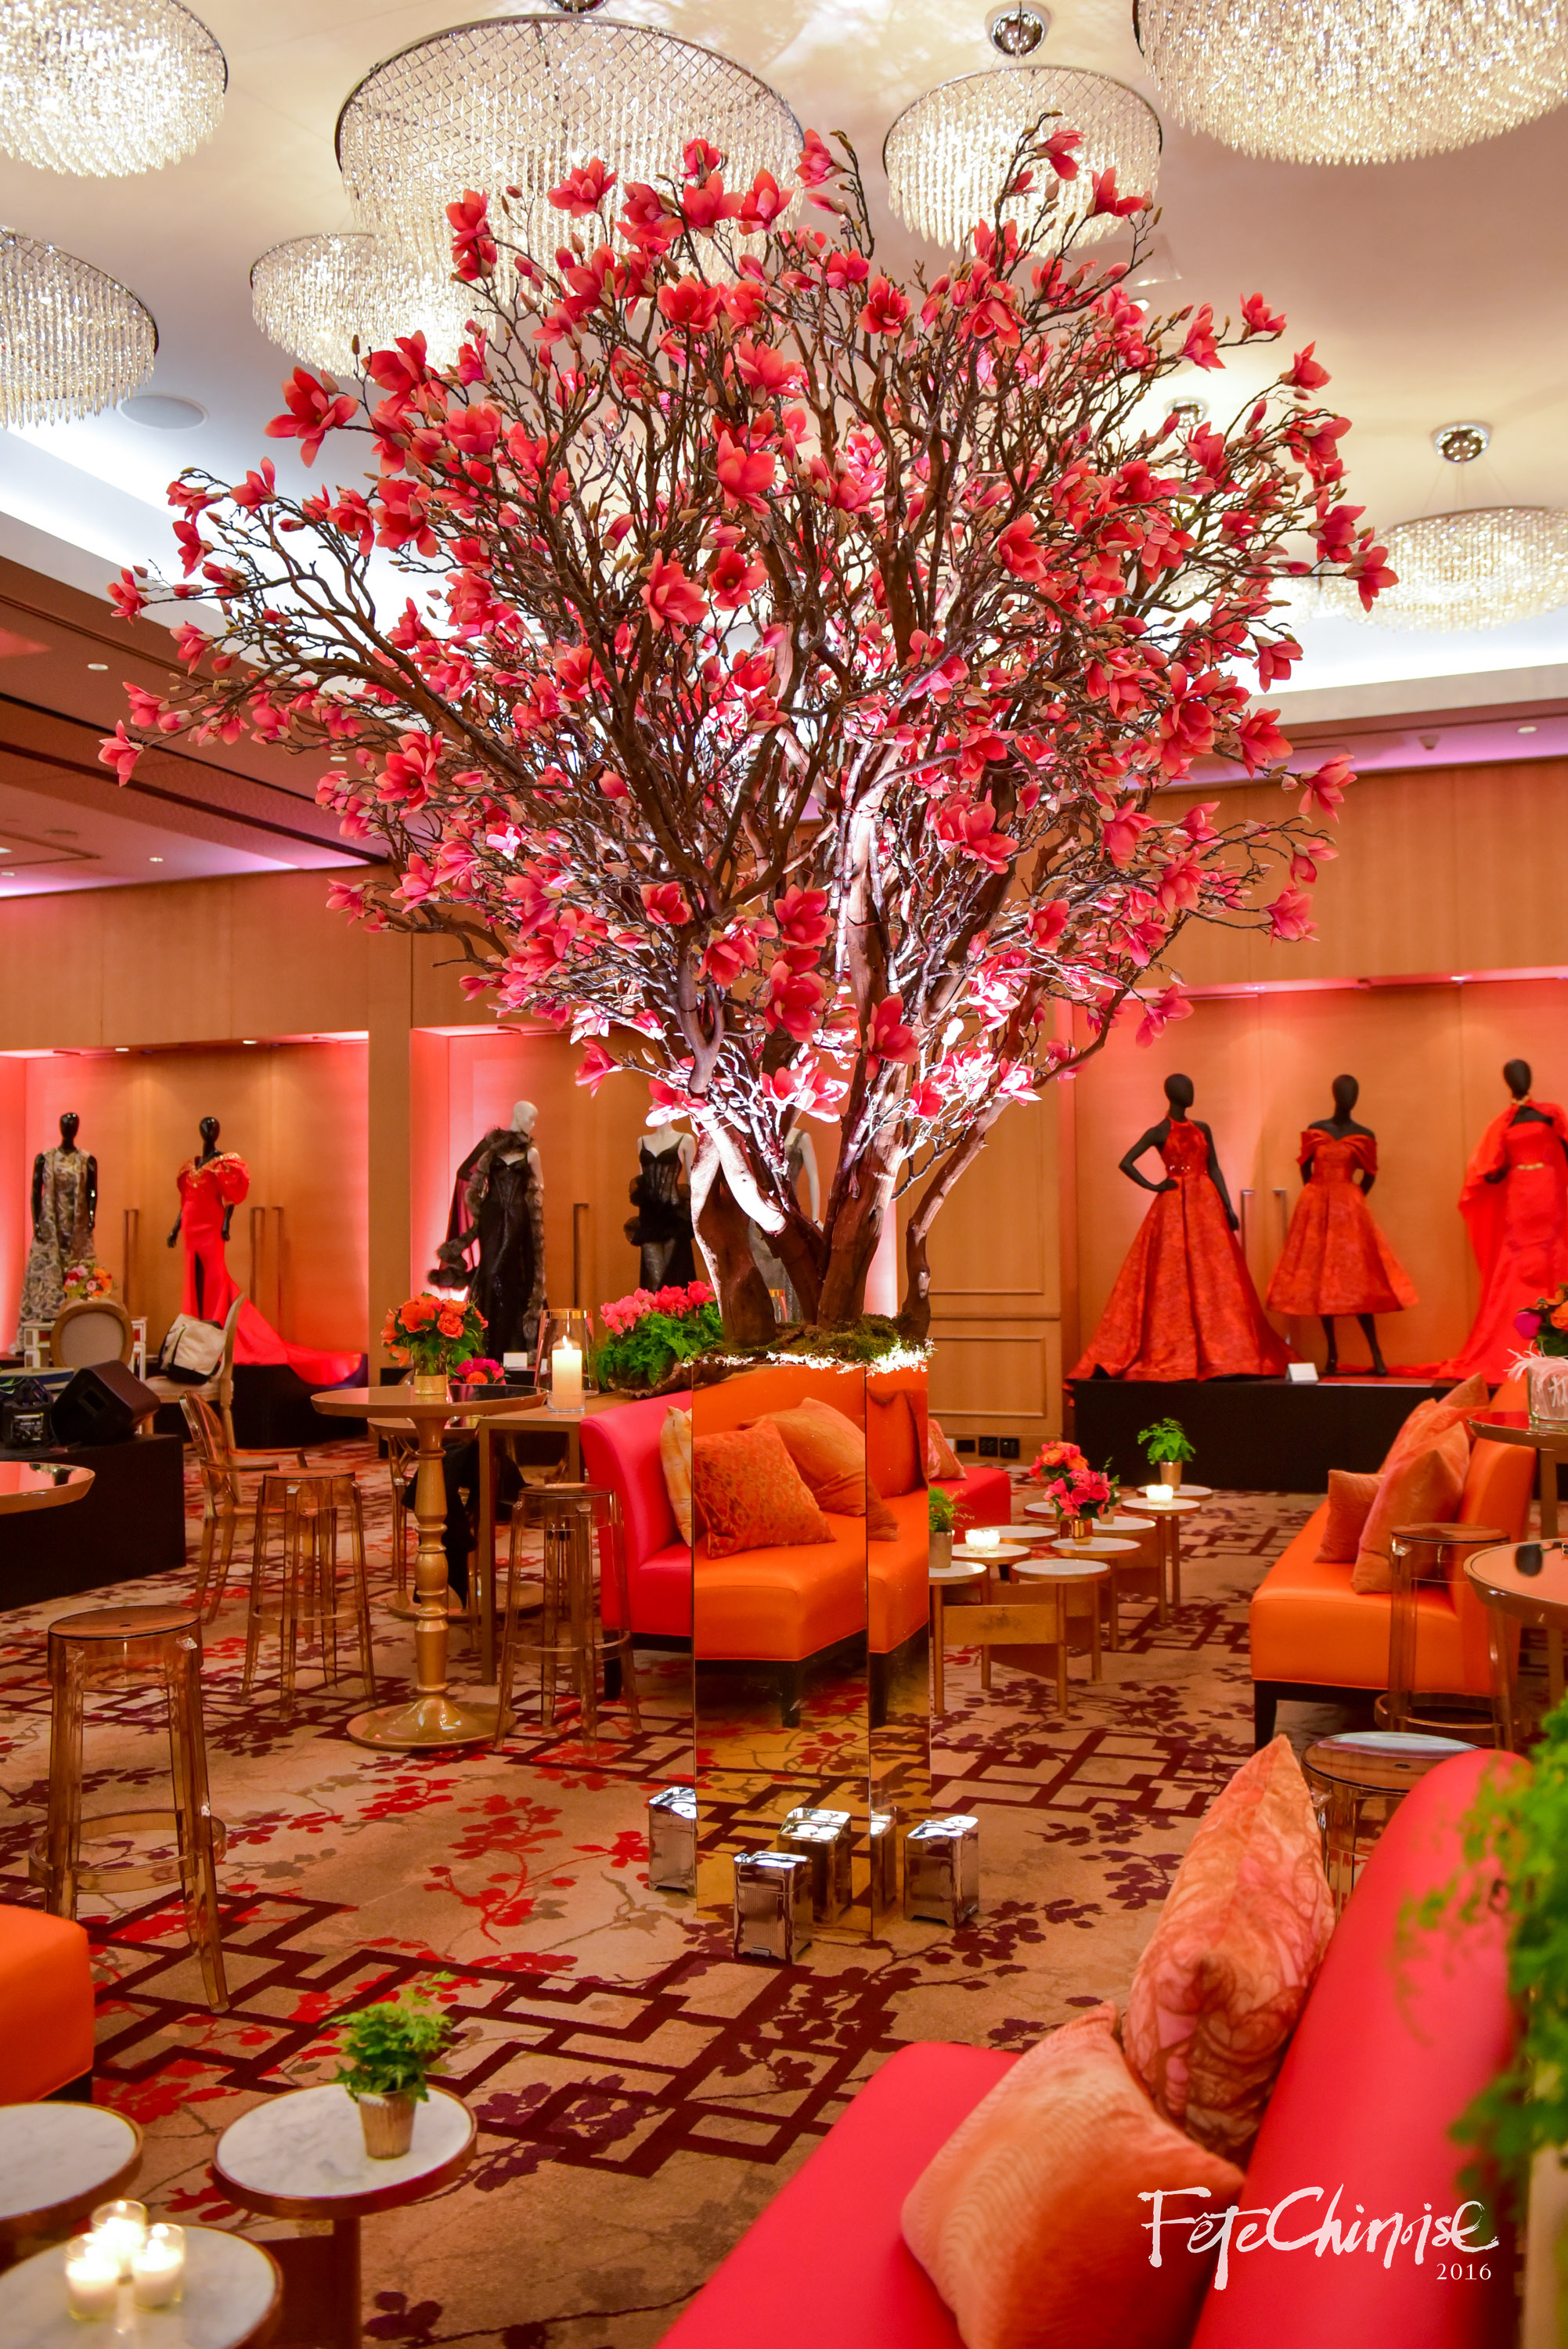 Cocktails Under the Wishing Tree were made memorable and refreshing with this room design by Stemz Event and Floral Design, featuring furniture from Contemporary Furniture Rentals.